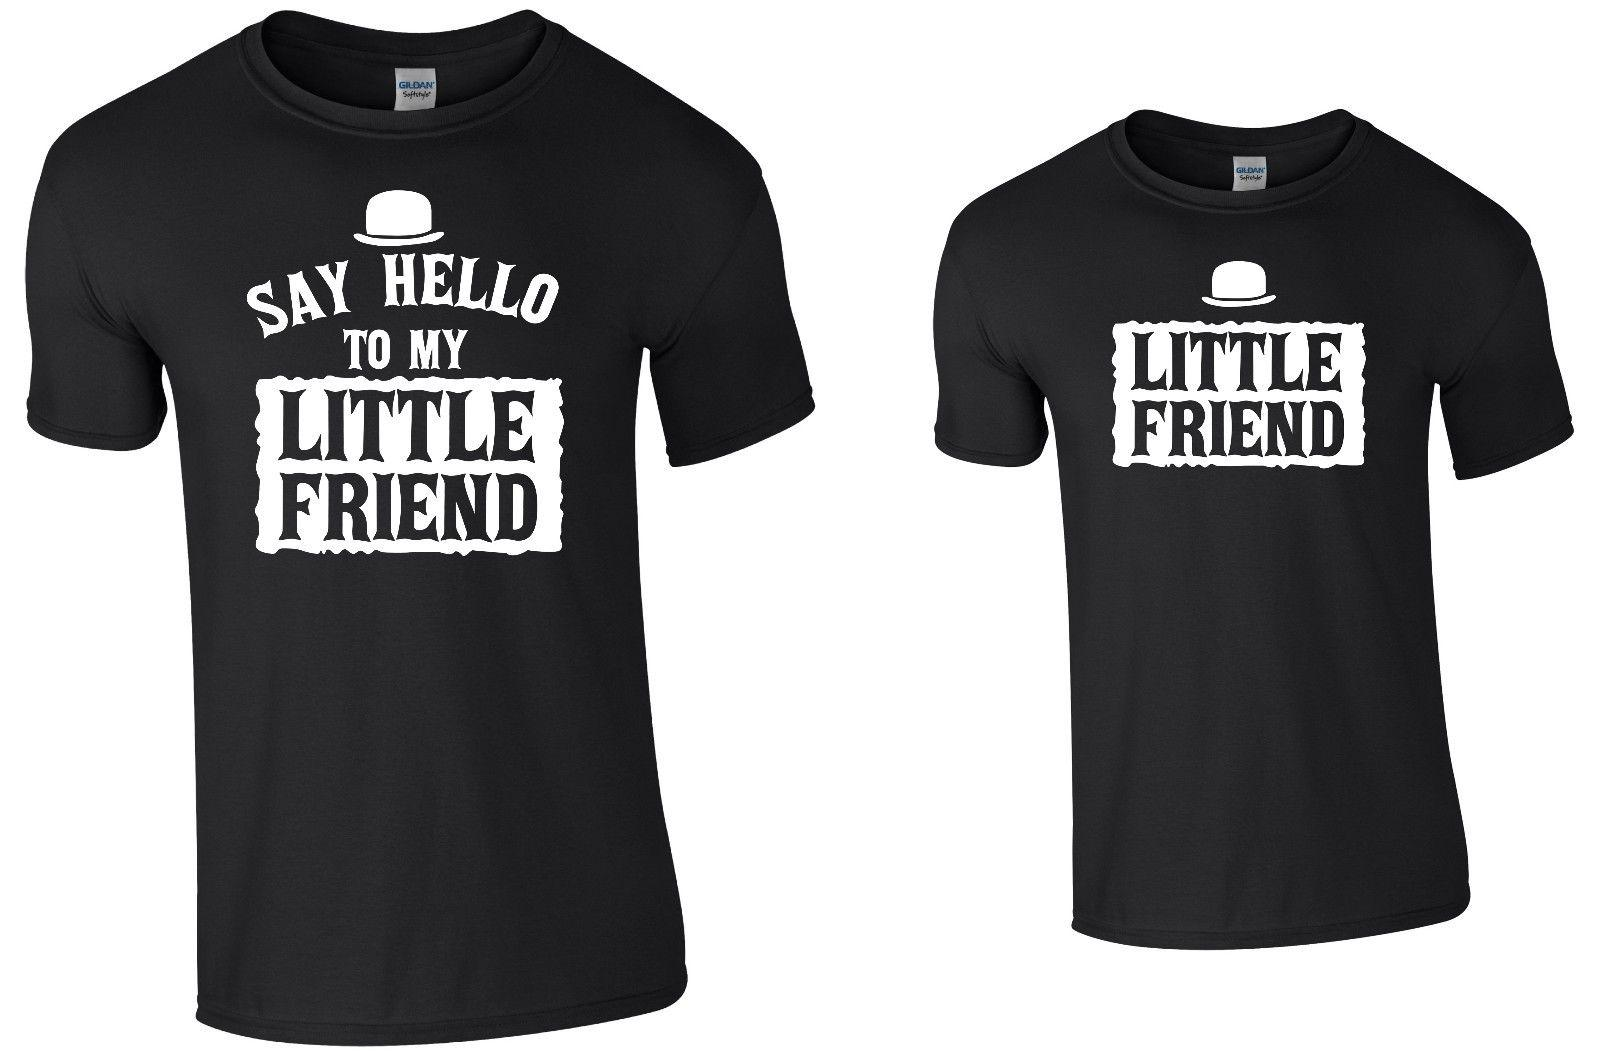 Say Hello To My Little Friend Tee Set Adult Childrens Tee T-Shirt